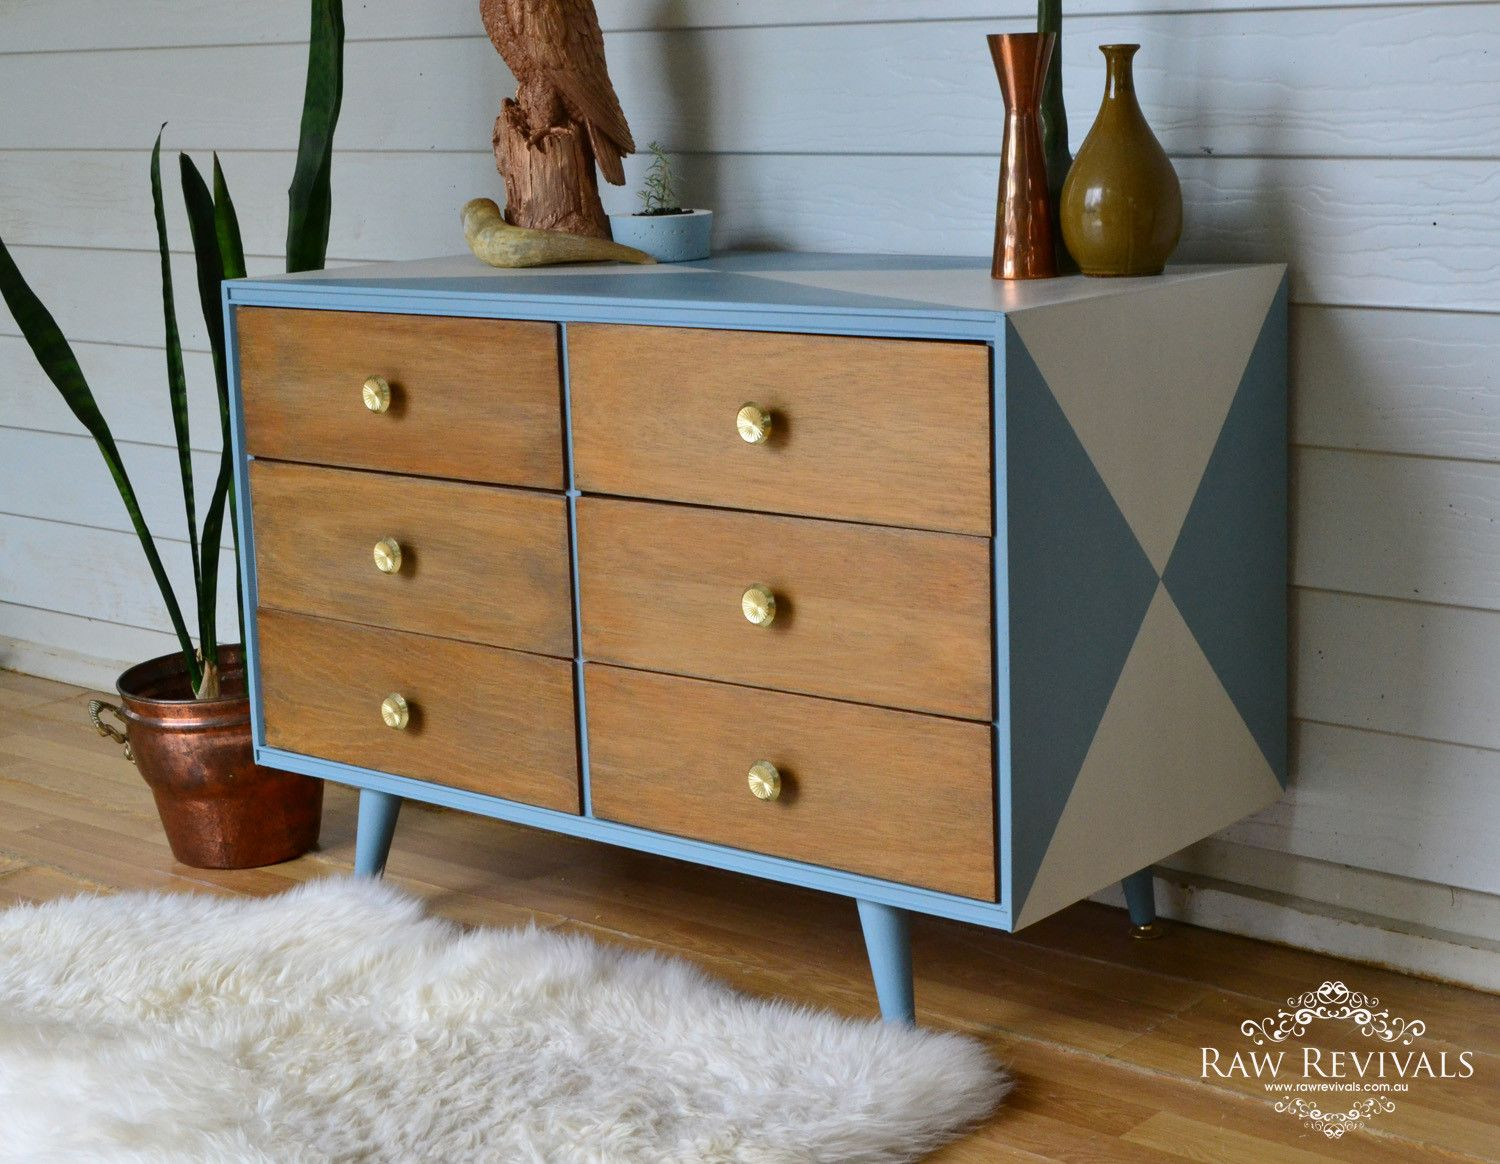 Best Vintage Retro Blue And White Geometric Chest Of Drawers 640 x 480